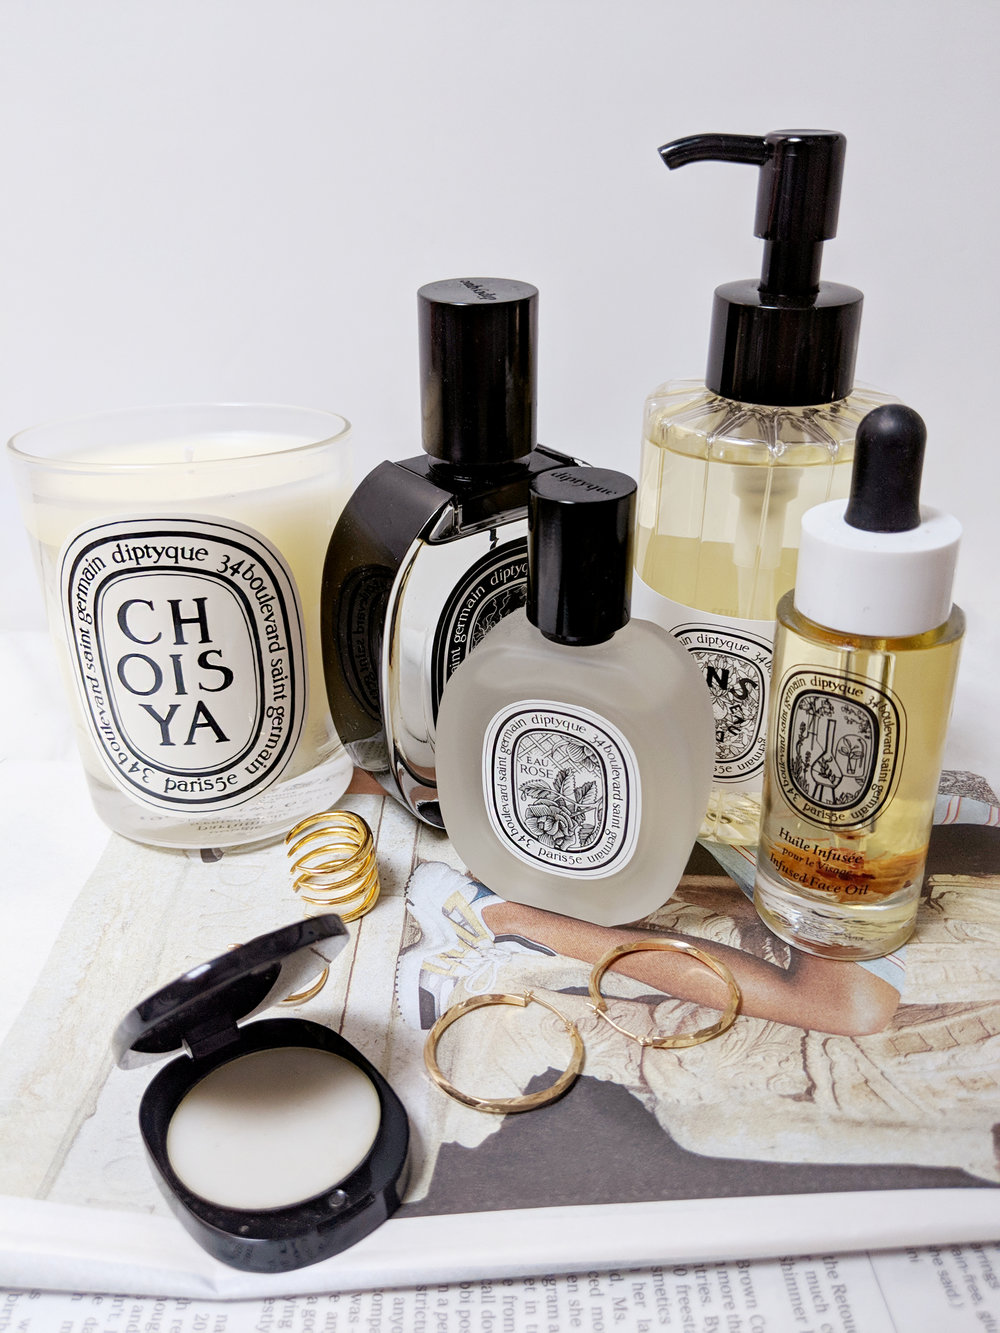 Diptyque beauty products